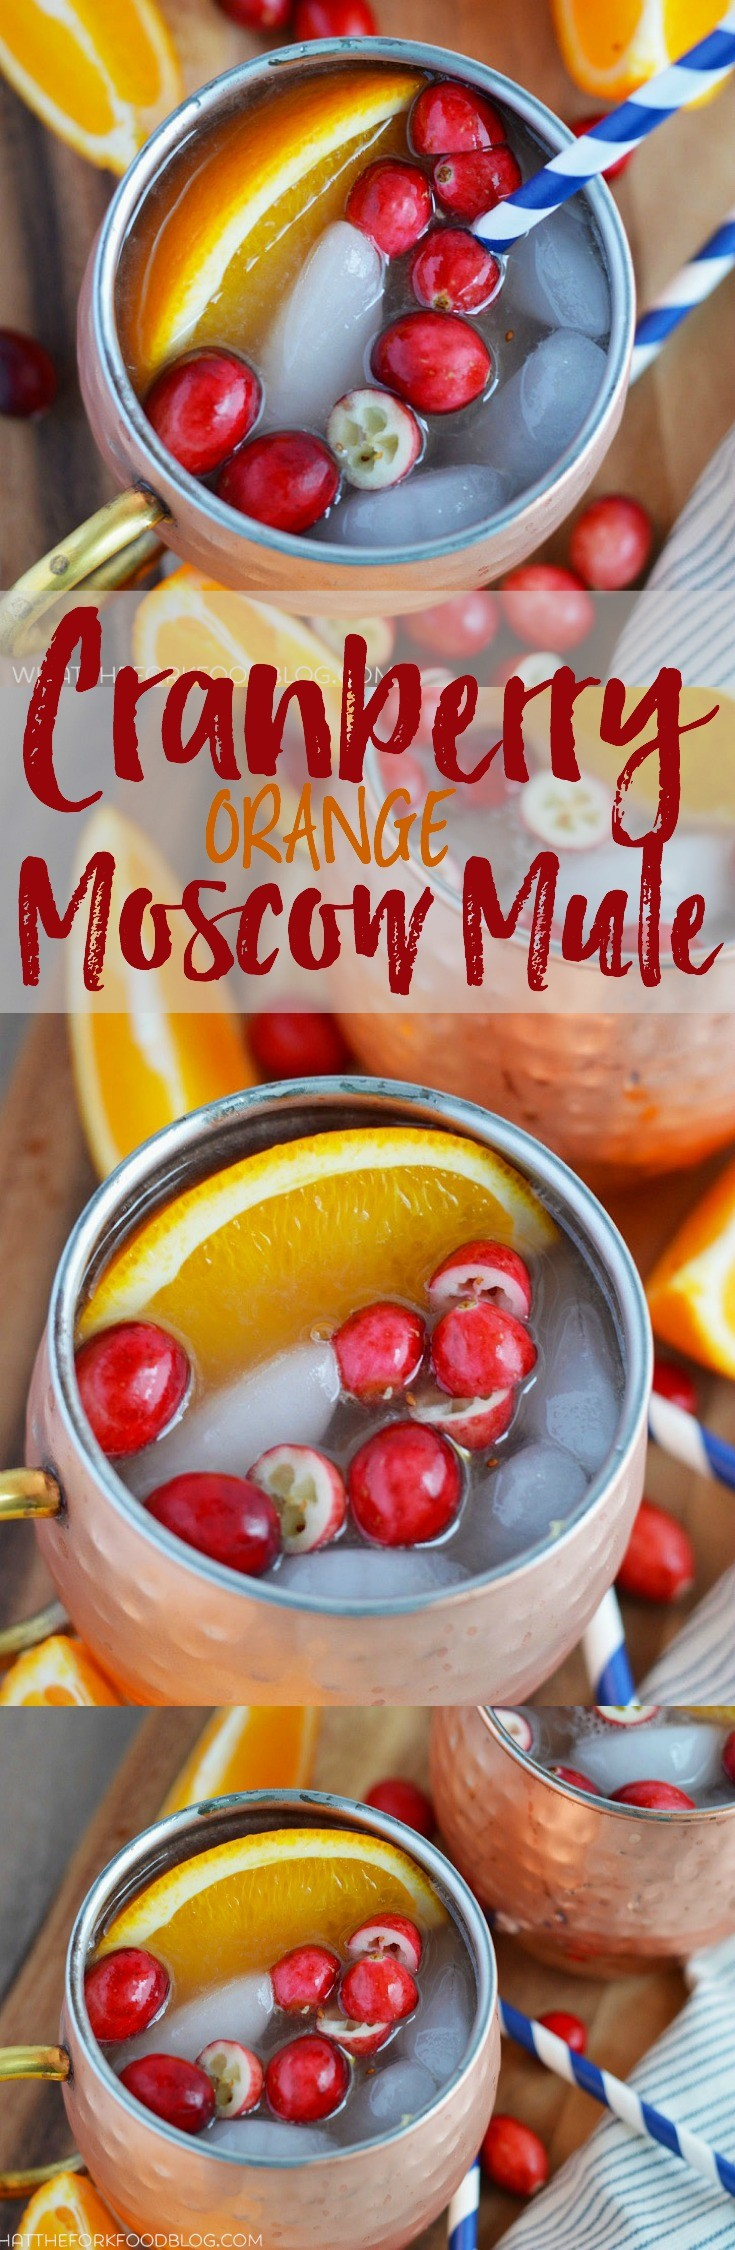 Cranberry Orange Moscow Mule from What The Fork Food Blog. A twist on the classic Moscow Mule, perfect for drinking all winter long. | whattheforkfoodblog.com #MoscowMule #Christmas #Thanksgiving #cocktails